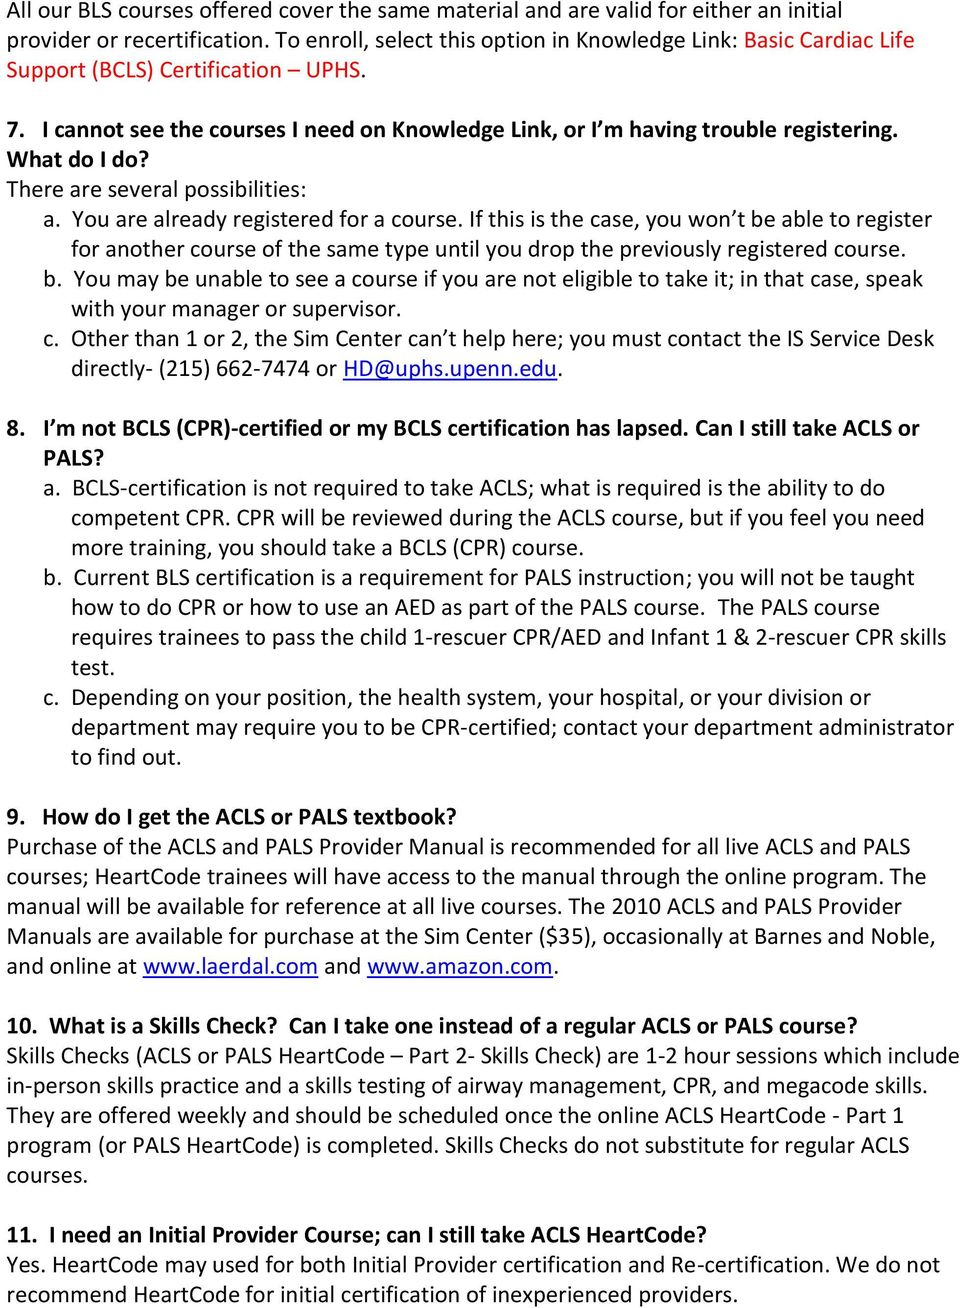 Acls Pals And Bls Bcls Cpr Faqs Pdf